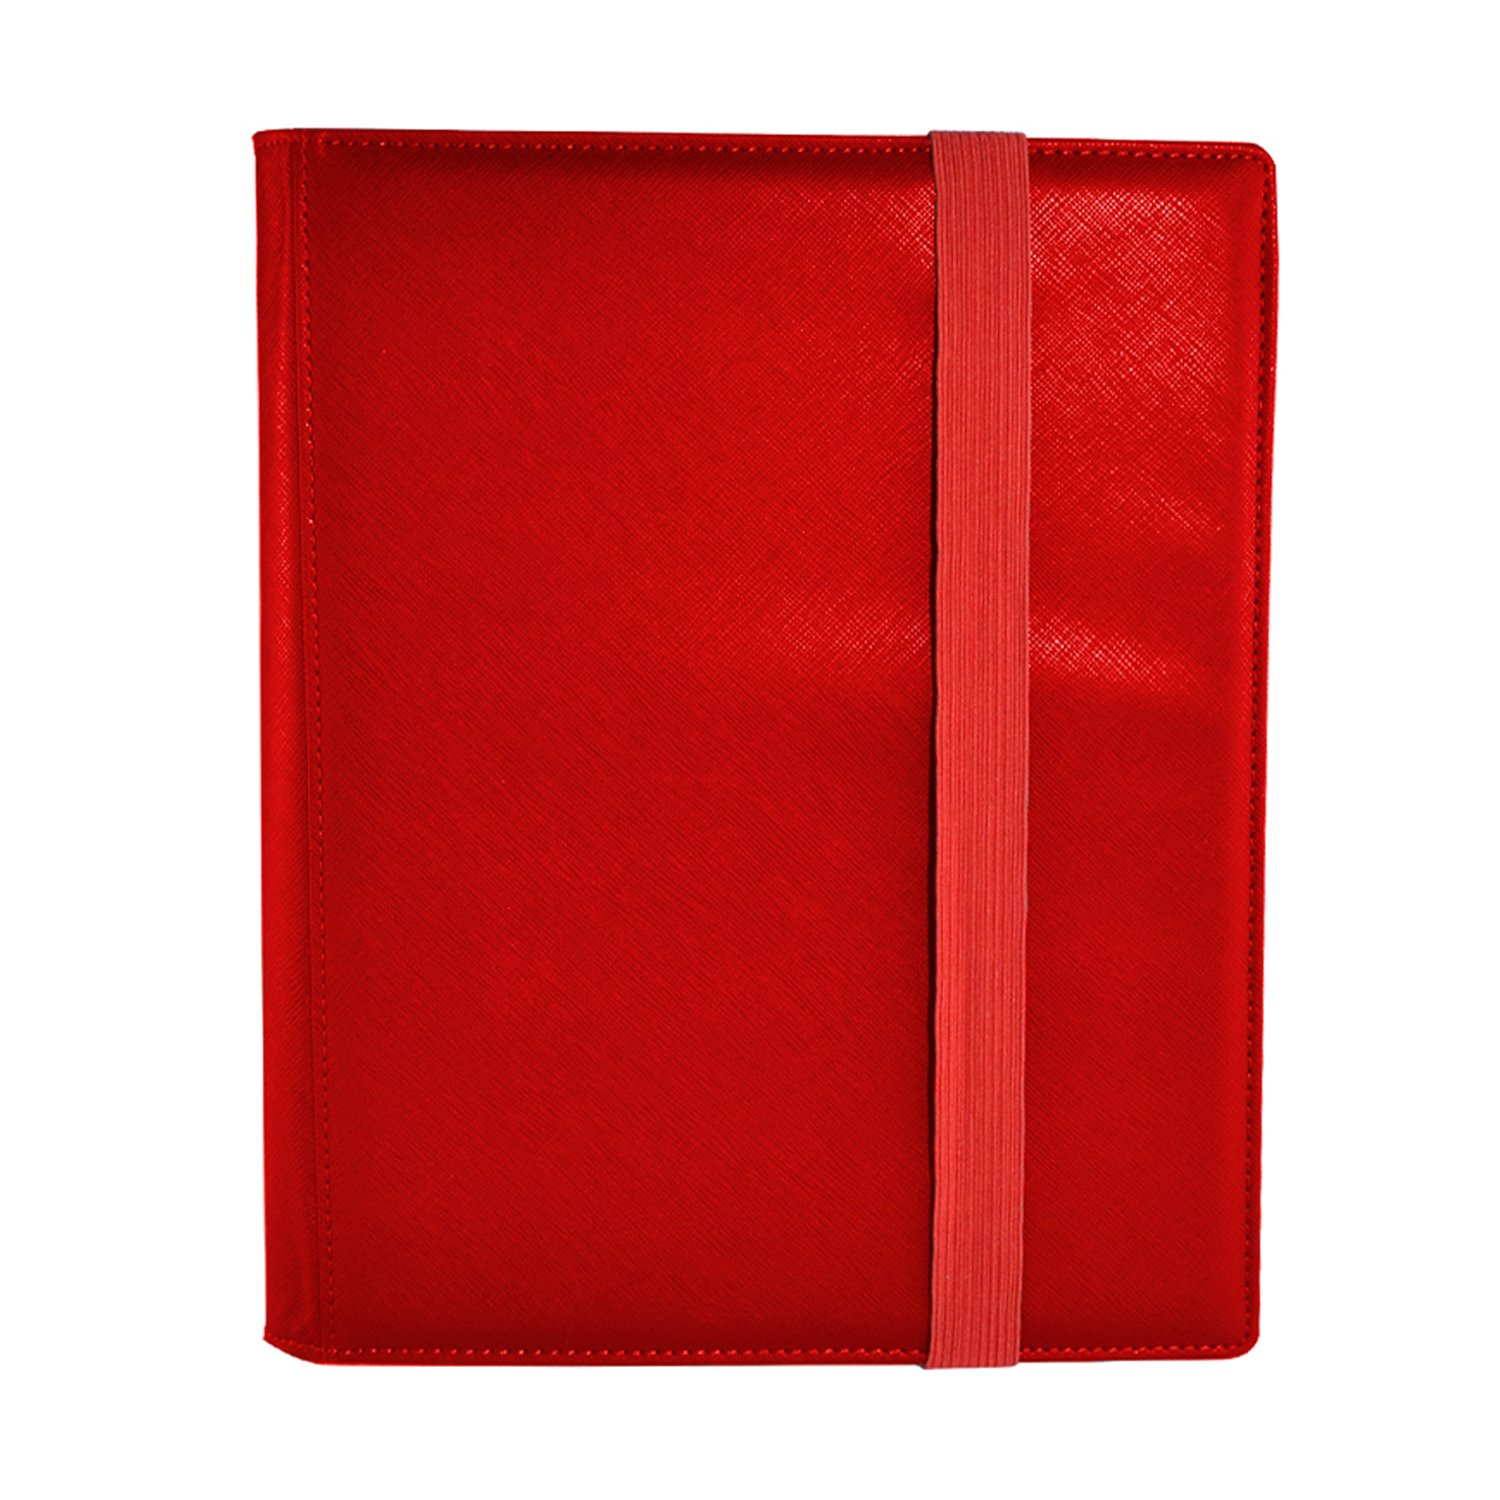 Dex Protection Dex Binder 9 Red Deluxe Portfolio 9-Pocket Velvet-Lined Playset Album Holds 360 Cards Double Sided, Side-Load Binder fits Magic, Pokemon, Yu-Gi-Oh